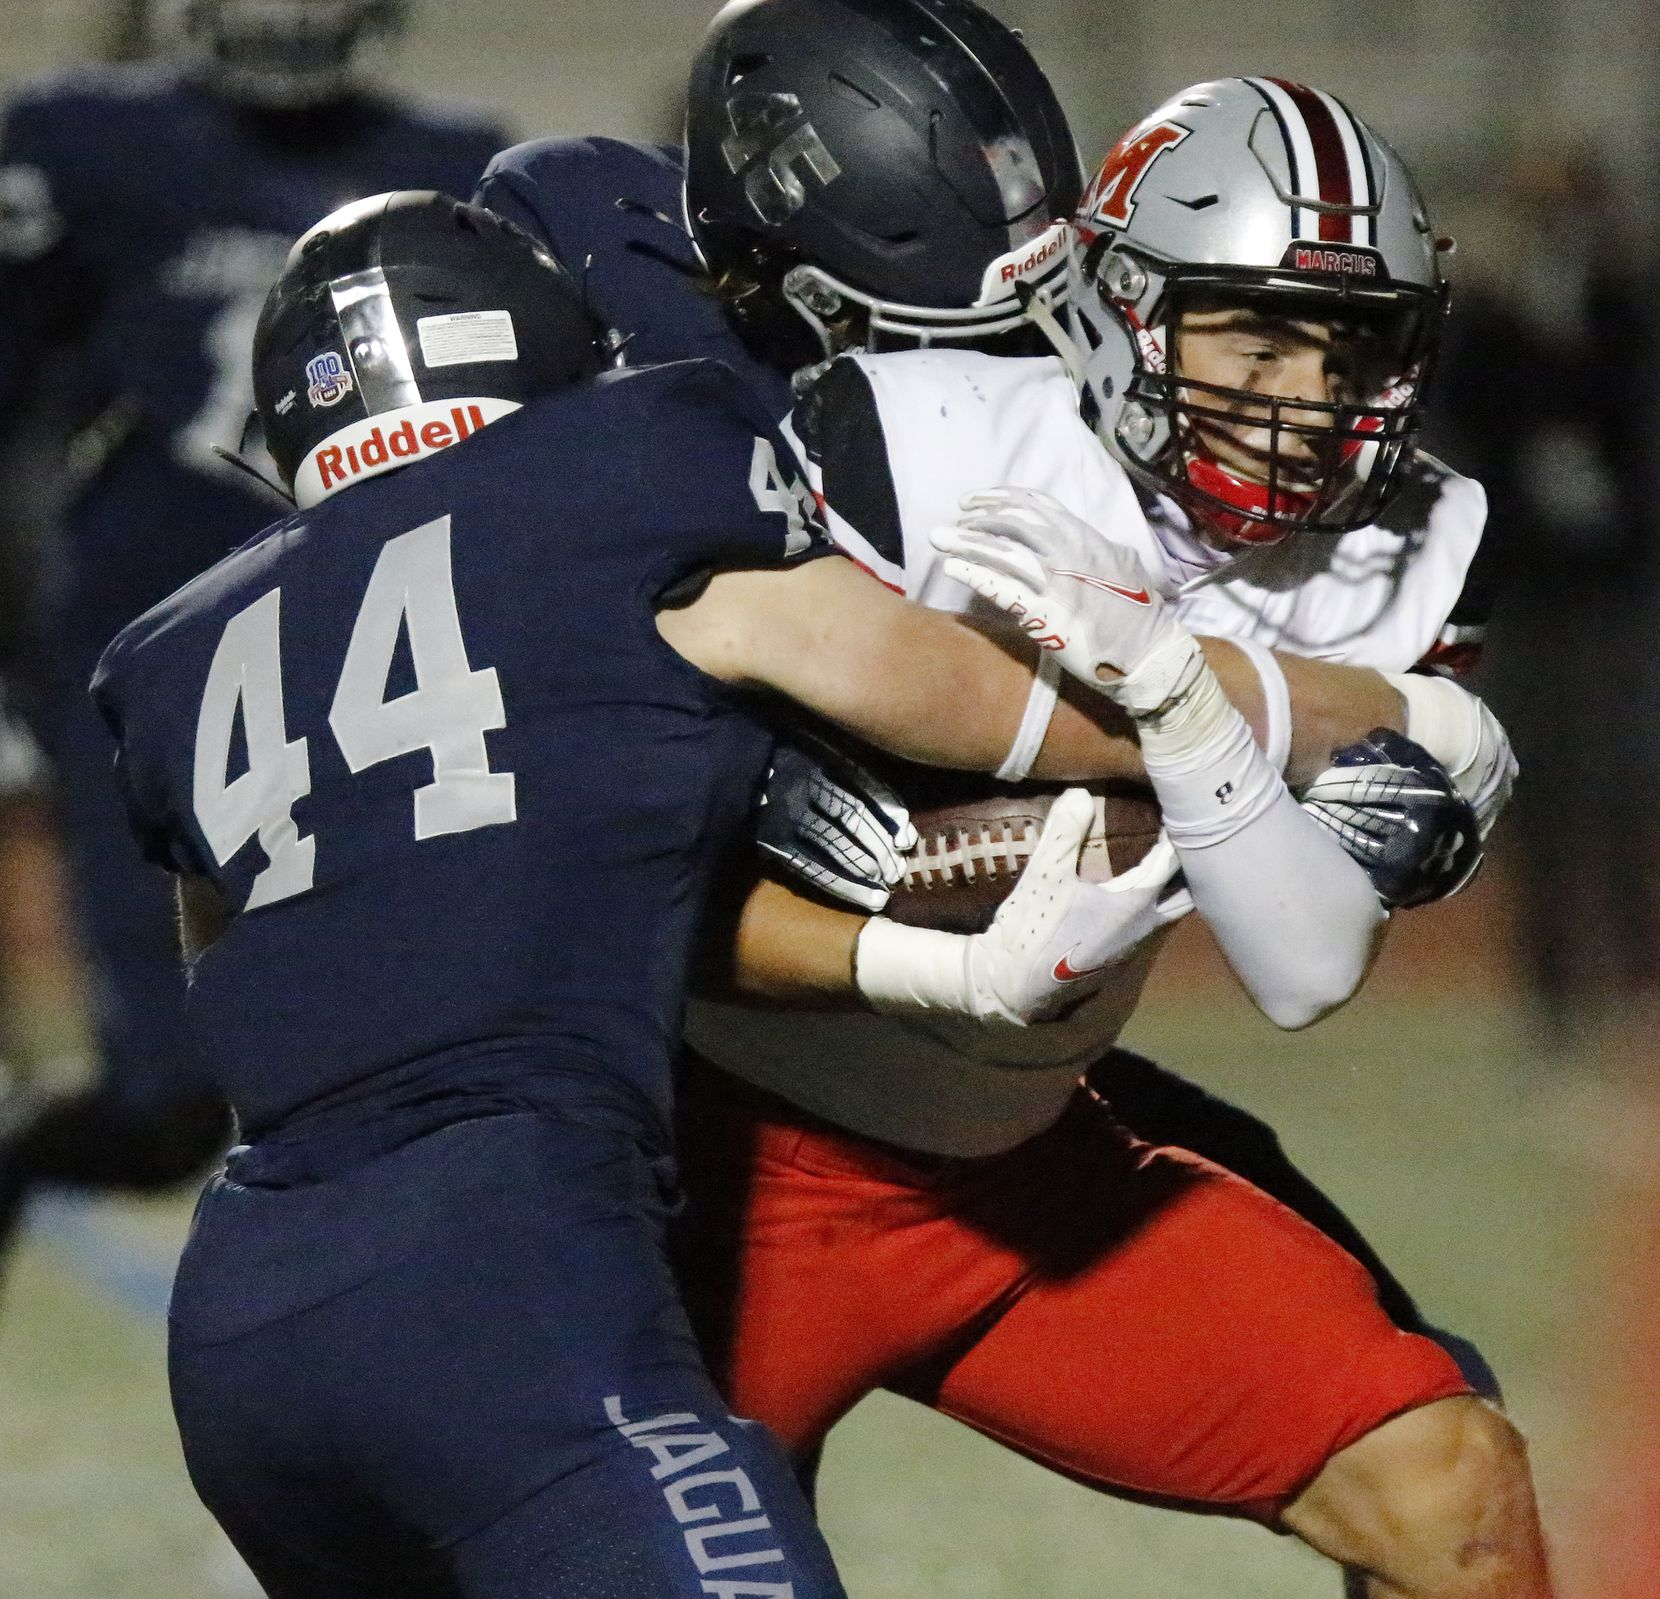 Flower Mound Marcus running back Tyler Schott (3) is tackled by Flower Mound High School linebacker Ryan Brubaker (44) and Flower Mound High School linebacker Joey Lucash (45) during the first half as Flower Mound High School hosted Flower Mound Marcus High School at Neal E. Wilson Jaguar Stadium on Friday night, October 23, 2020. (Stewart F. House/Special Contributor)